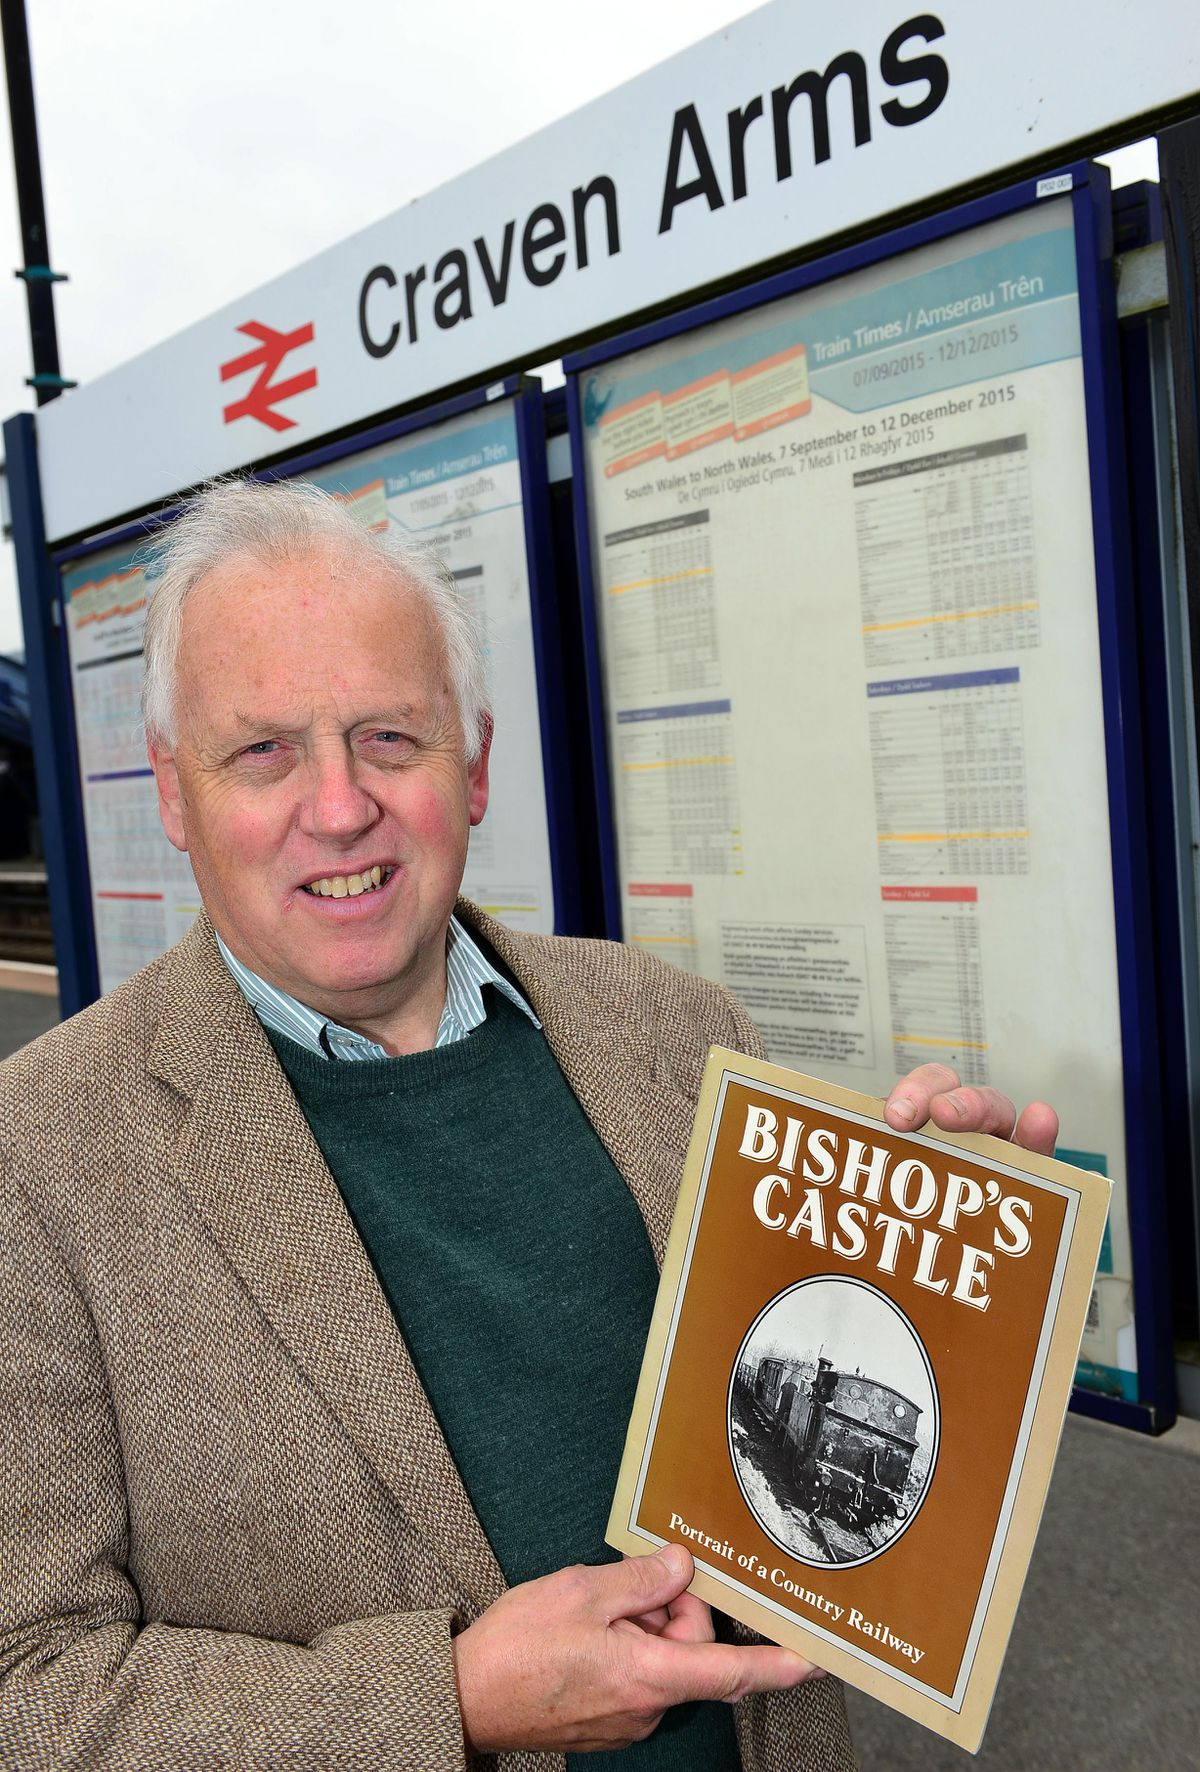 John Rimmer with one of Bishop's Castle Railway Society's books at the Craven Arms end of the line